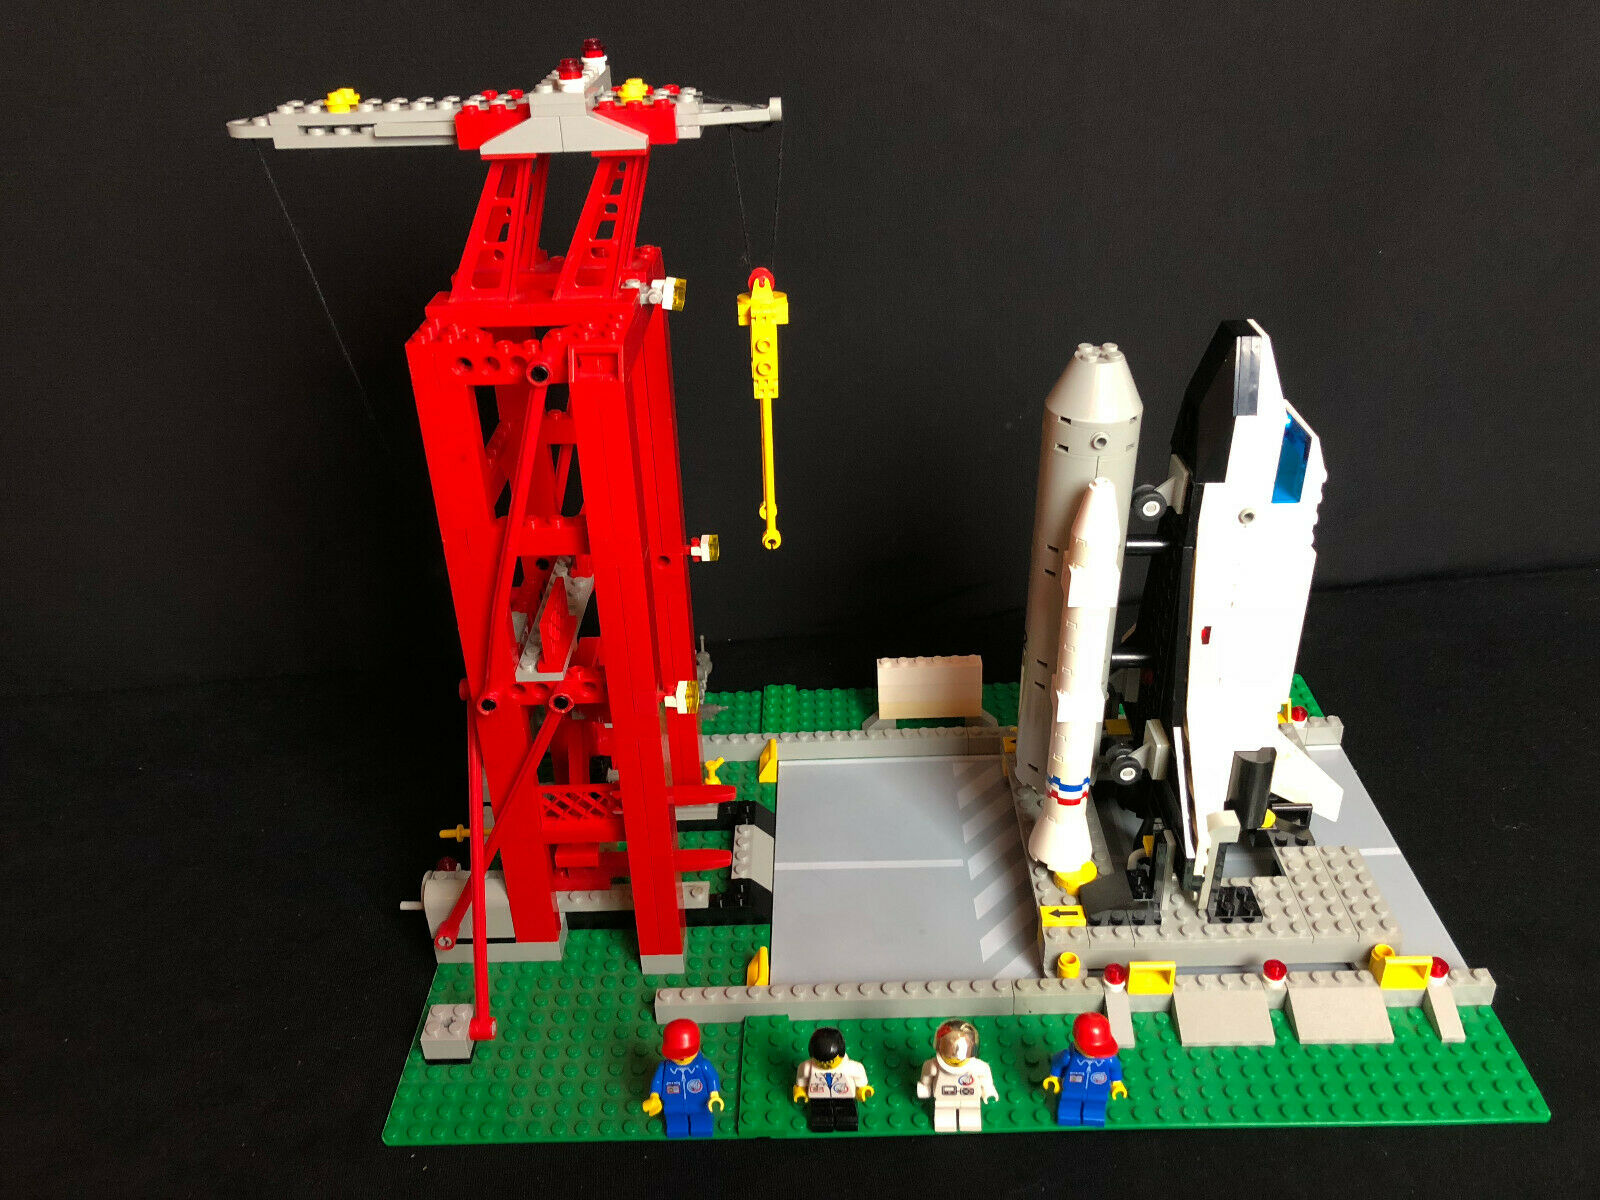 Lego 6339 Shuttle Launch Pad Town → Launch Command missiles Station space missile